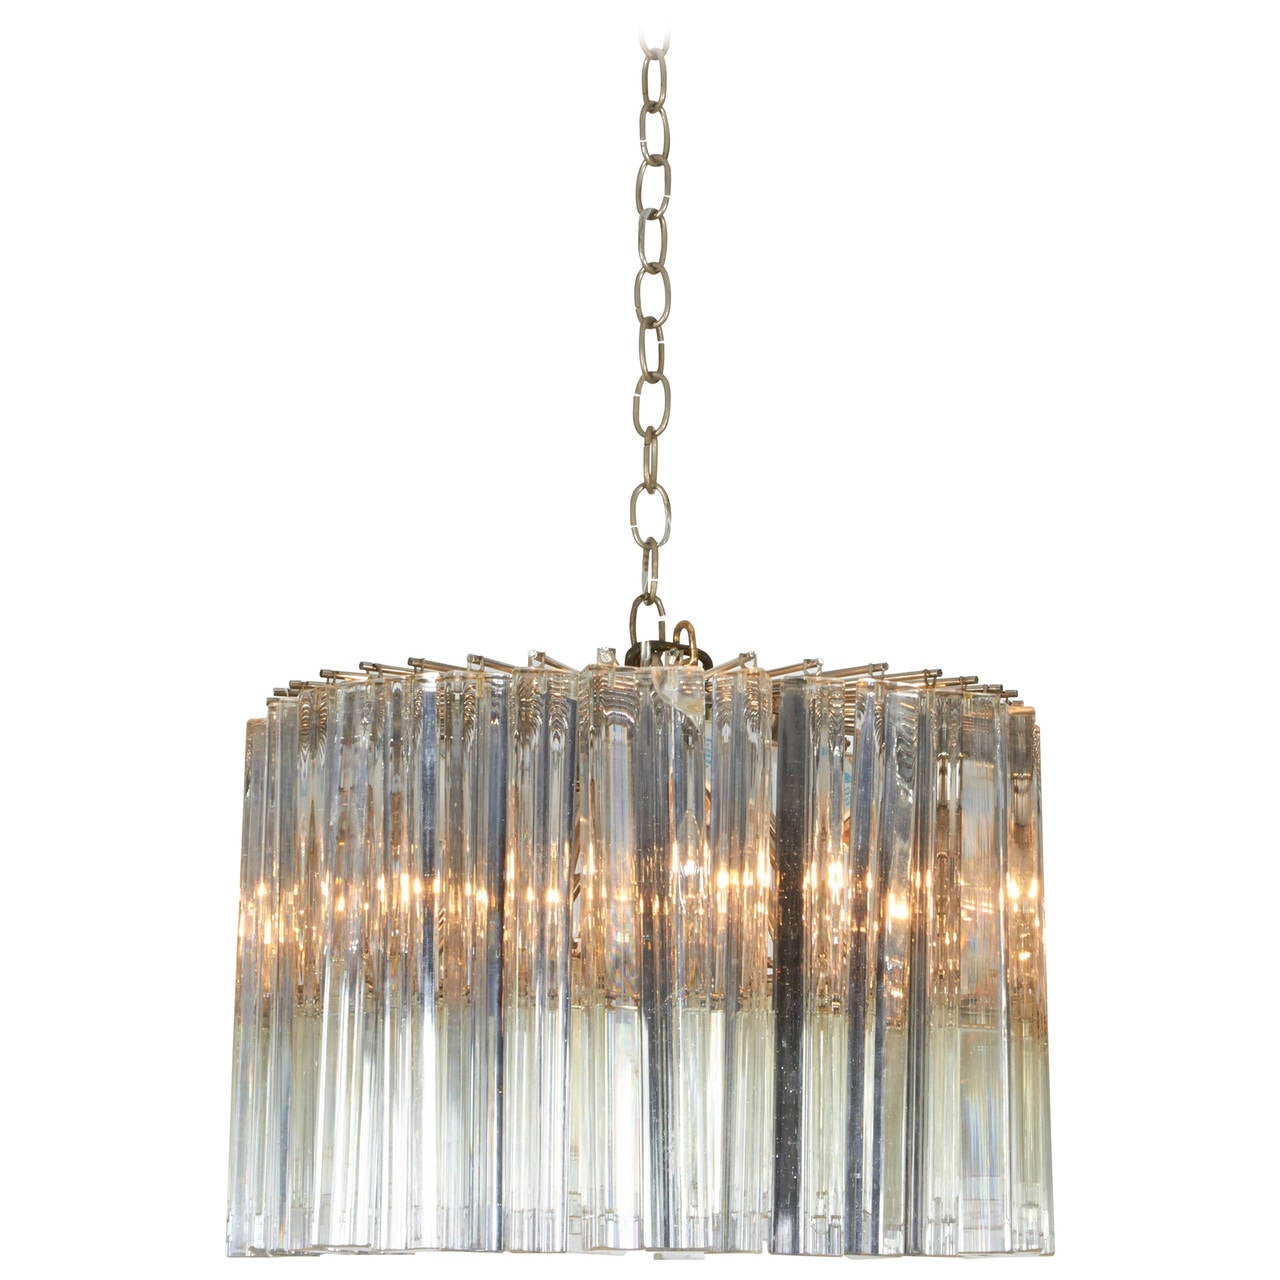 Dramatic Crystal Chandelier by Camer For Sale